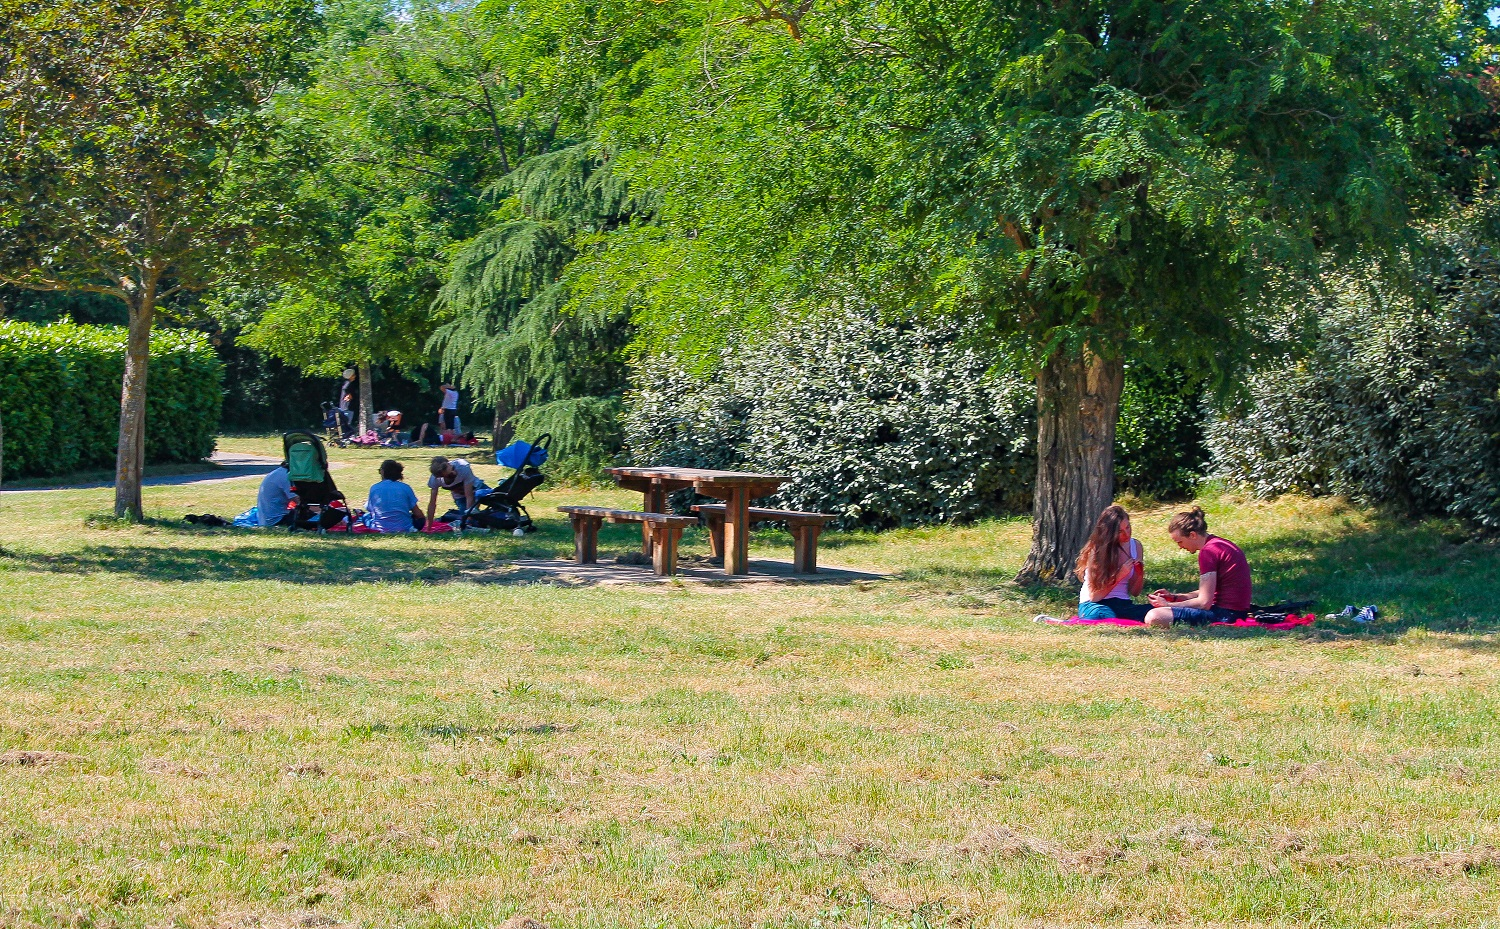 BOUCONNE OUTDOOR ACTIVITIES CENTER, MONTAIGUT-SUR-SAVE